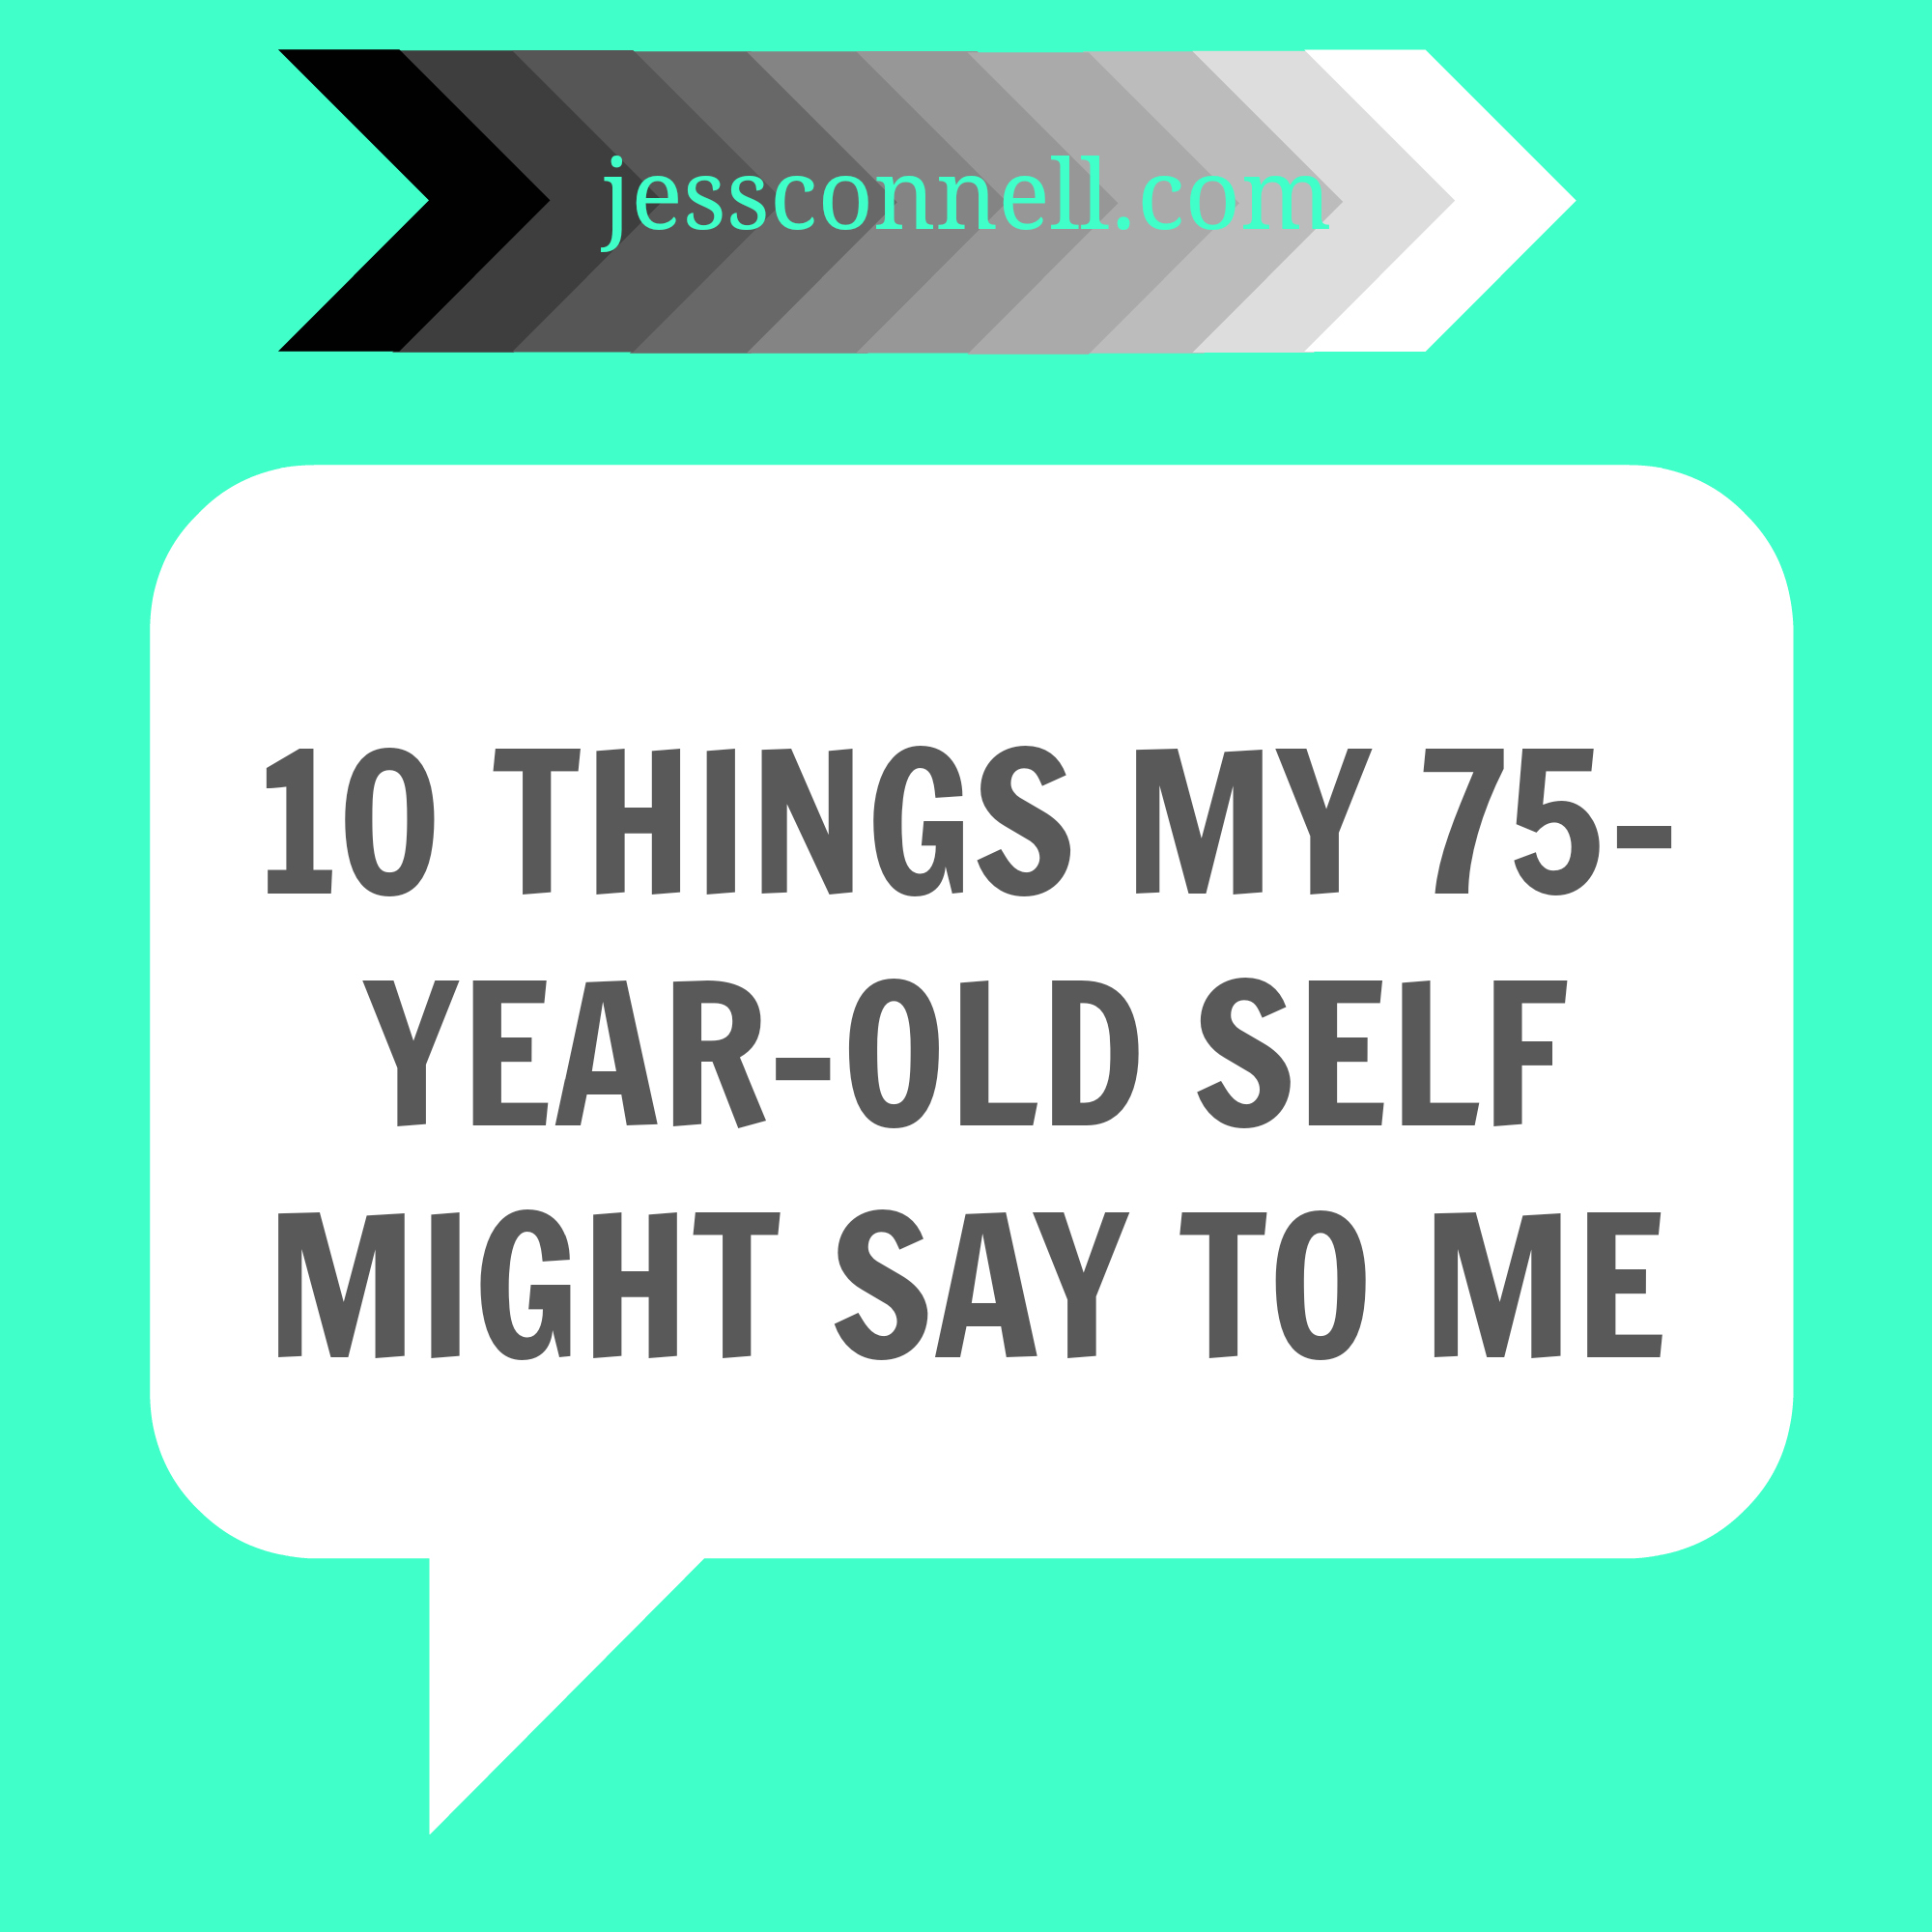 10 Things My 75-Year-Old Self Might Say To Me // jessconnell.com